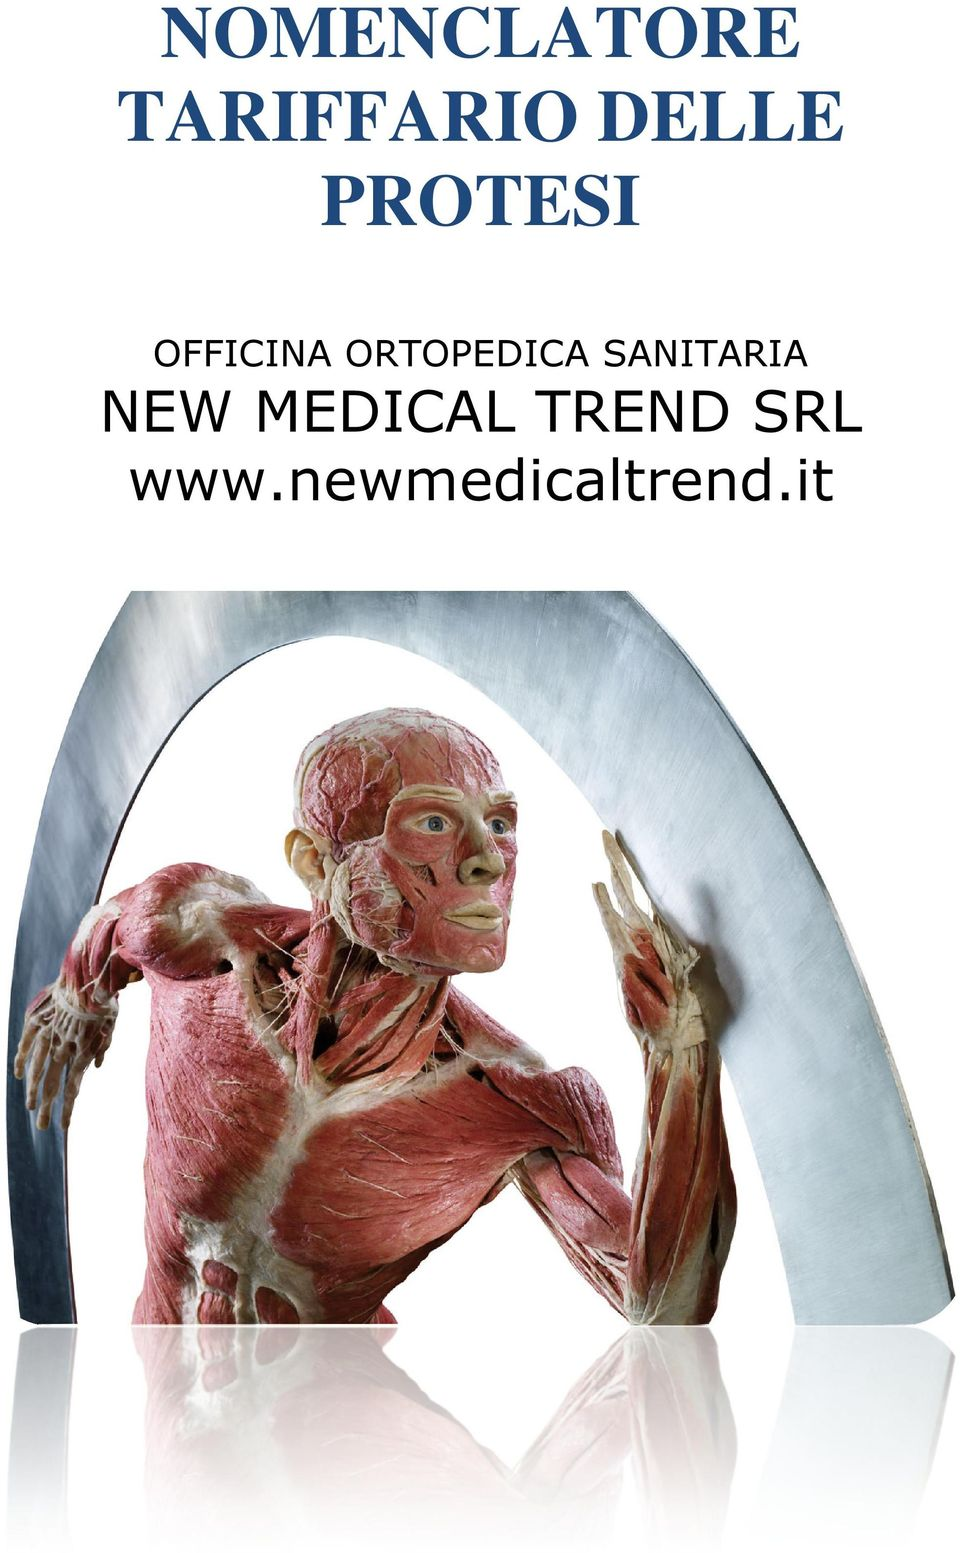 PROTESI NEW MEDICAL